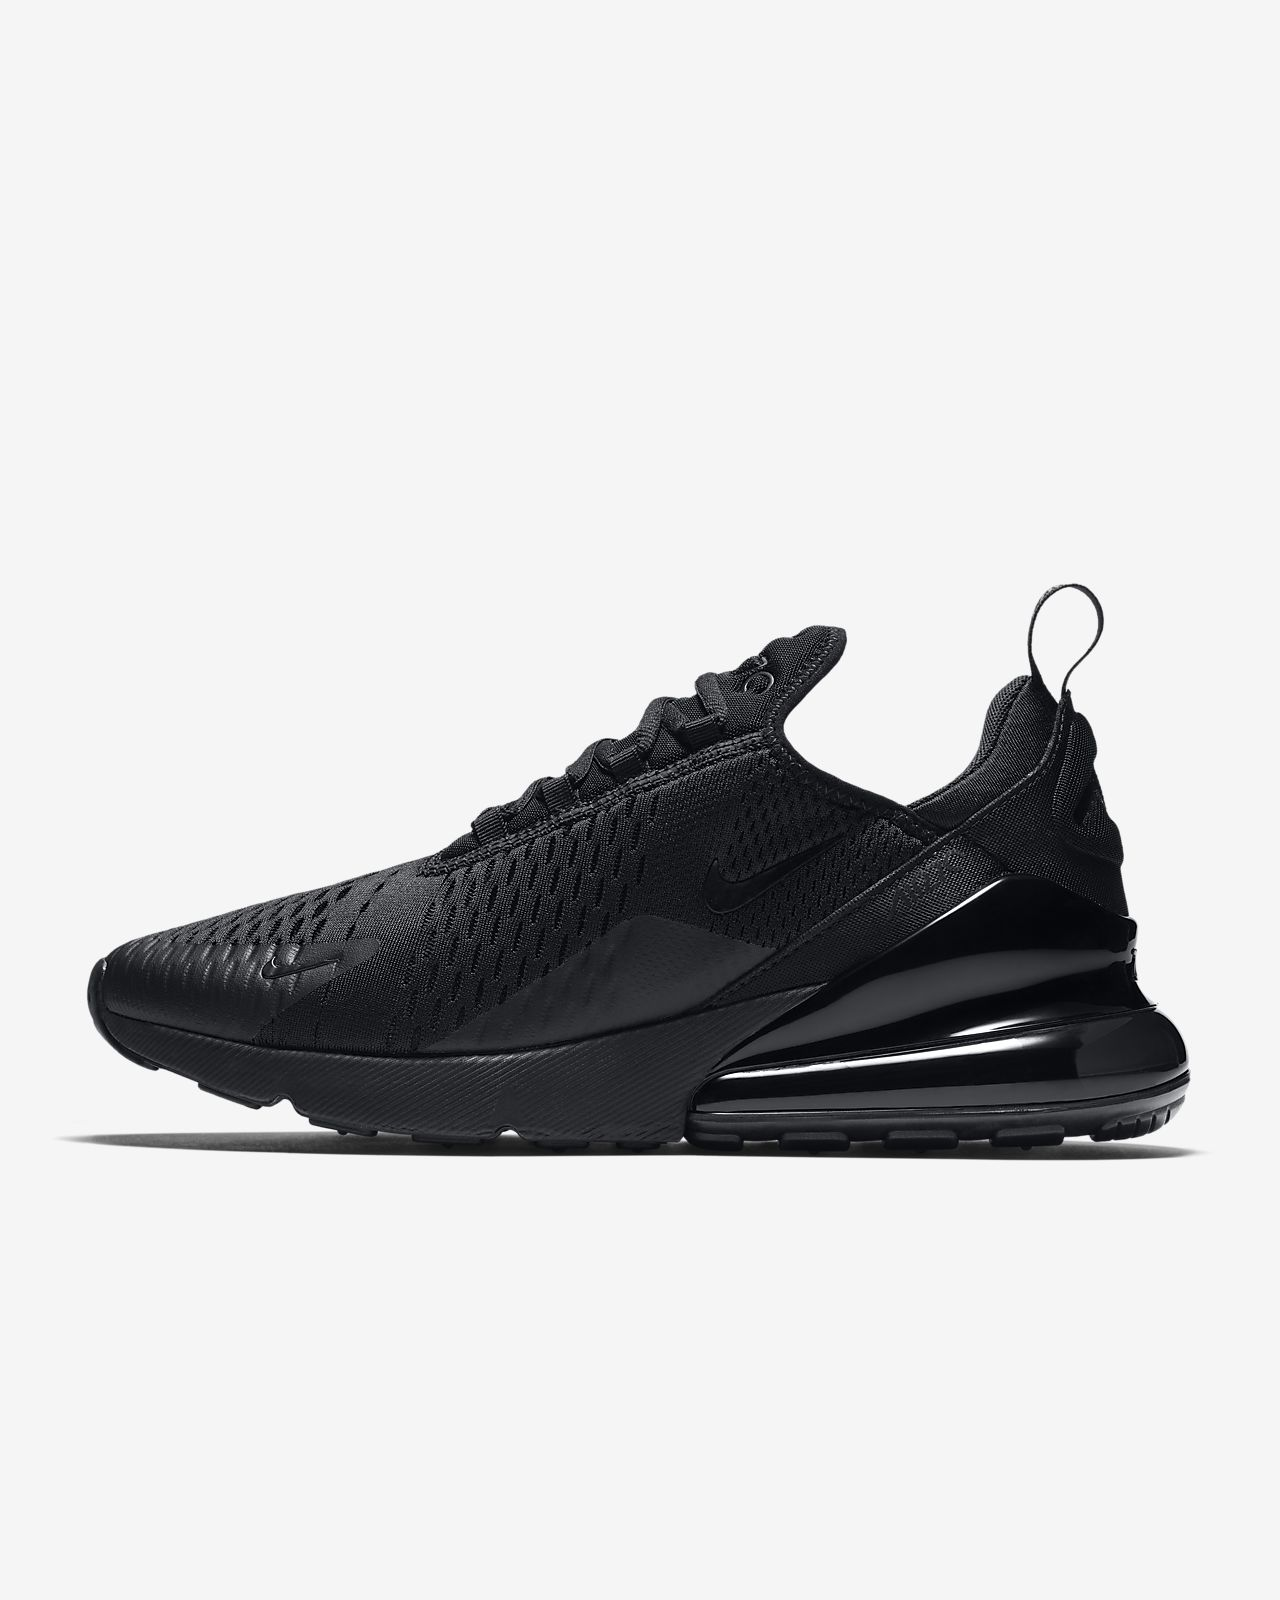 6b5cafbdc80f Nike Air Max 270 Men s Shoe. Nike.com CA